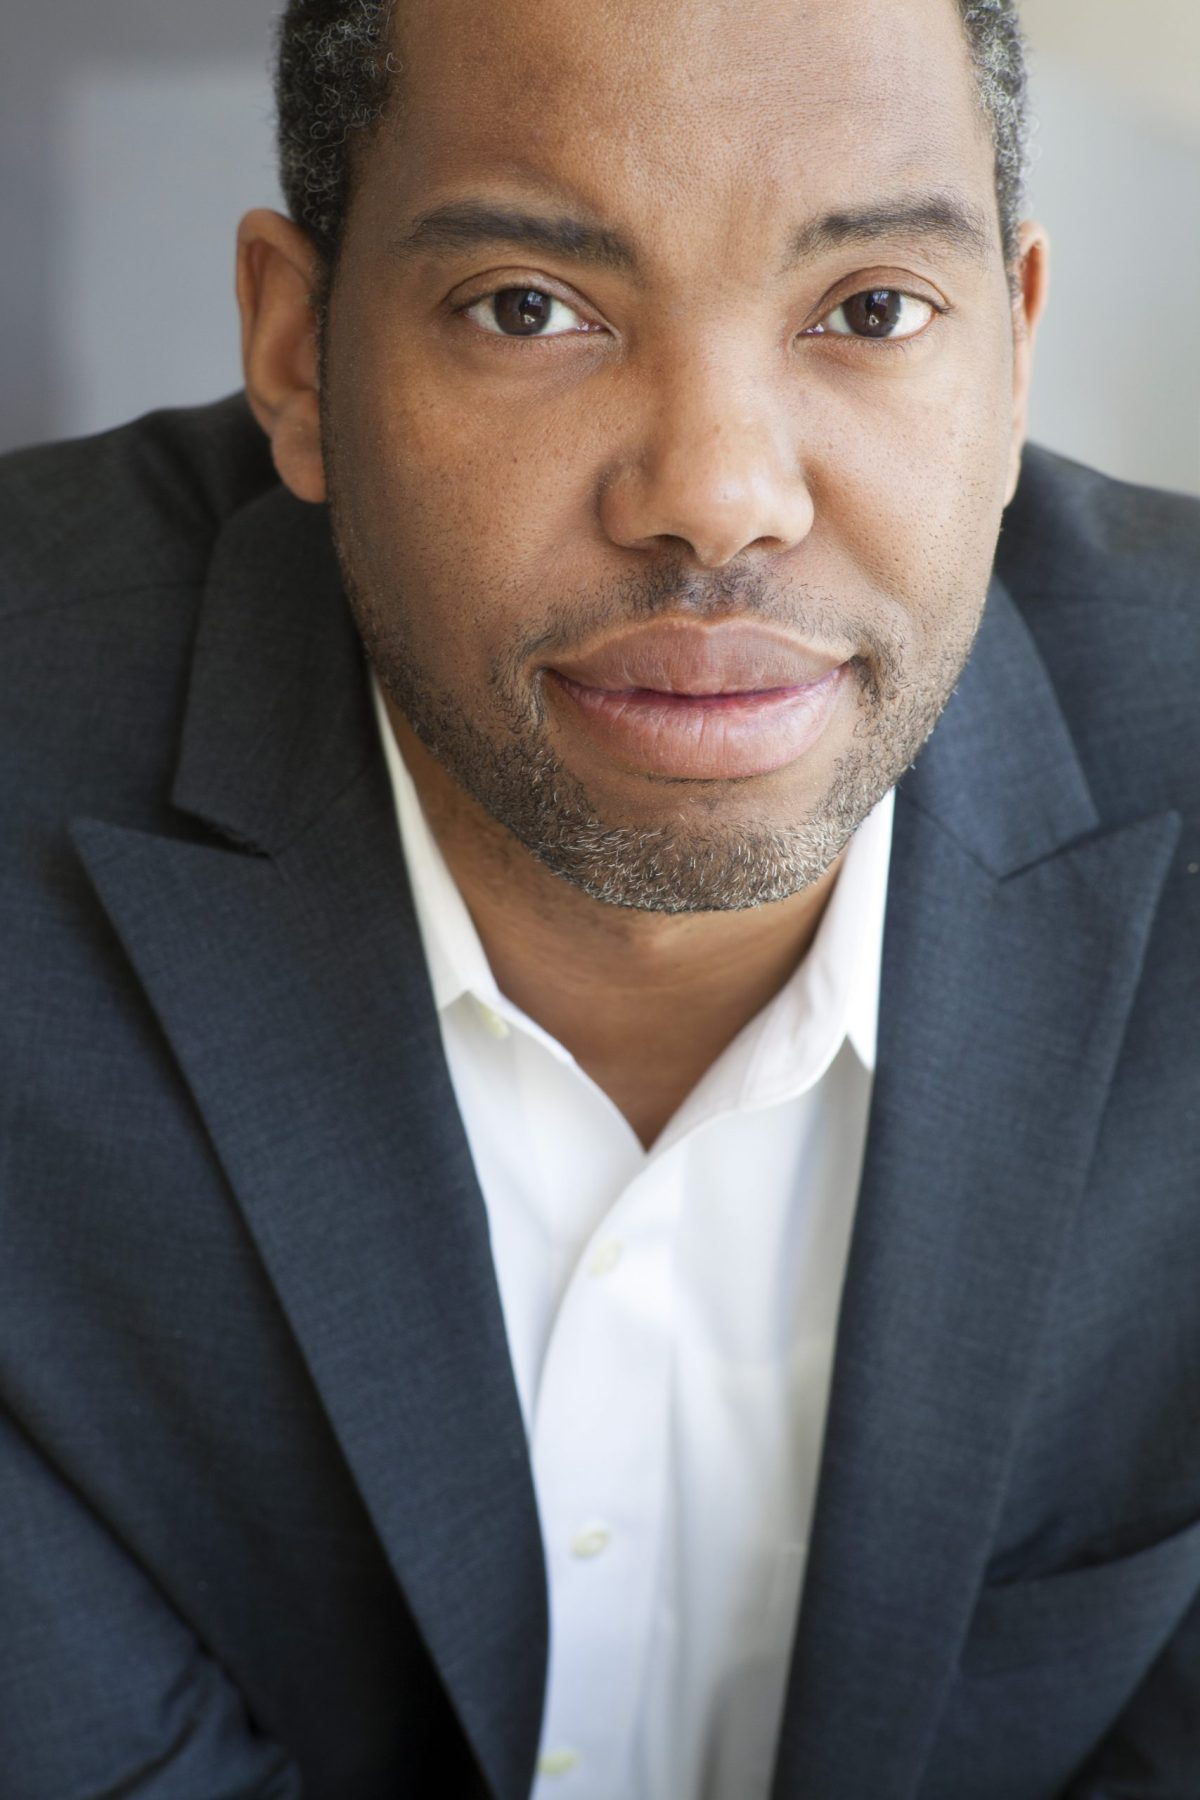 Ta-Nehisi Coates Interviewed by Jason Diamond